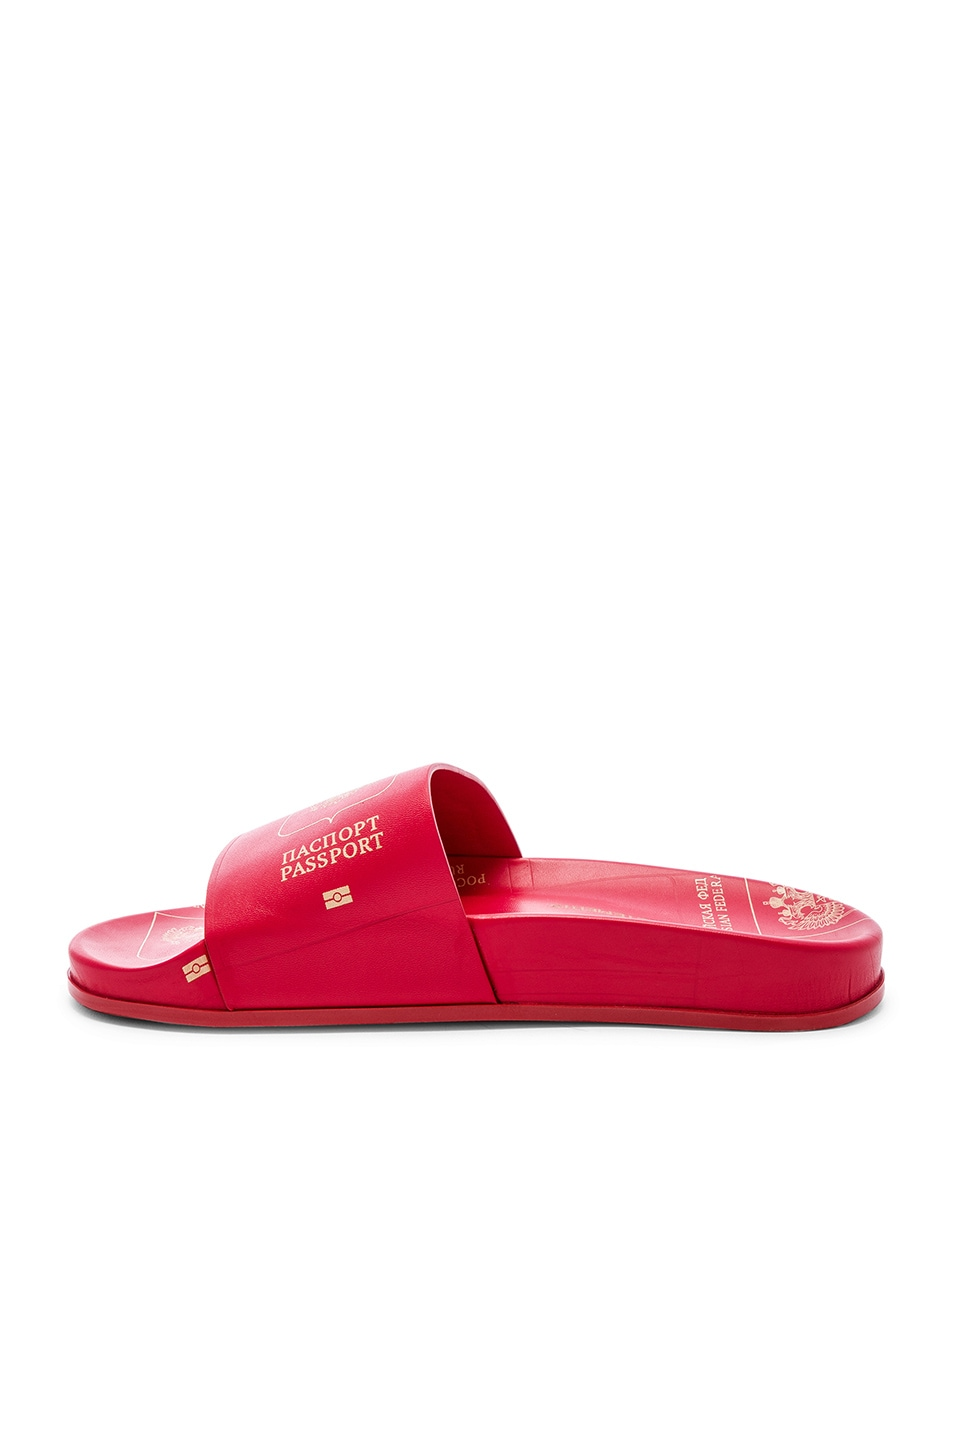 Image 4 of VETEMENTS Leather Passport Slides in Red